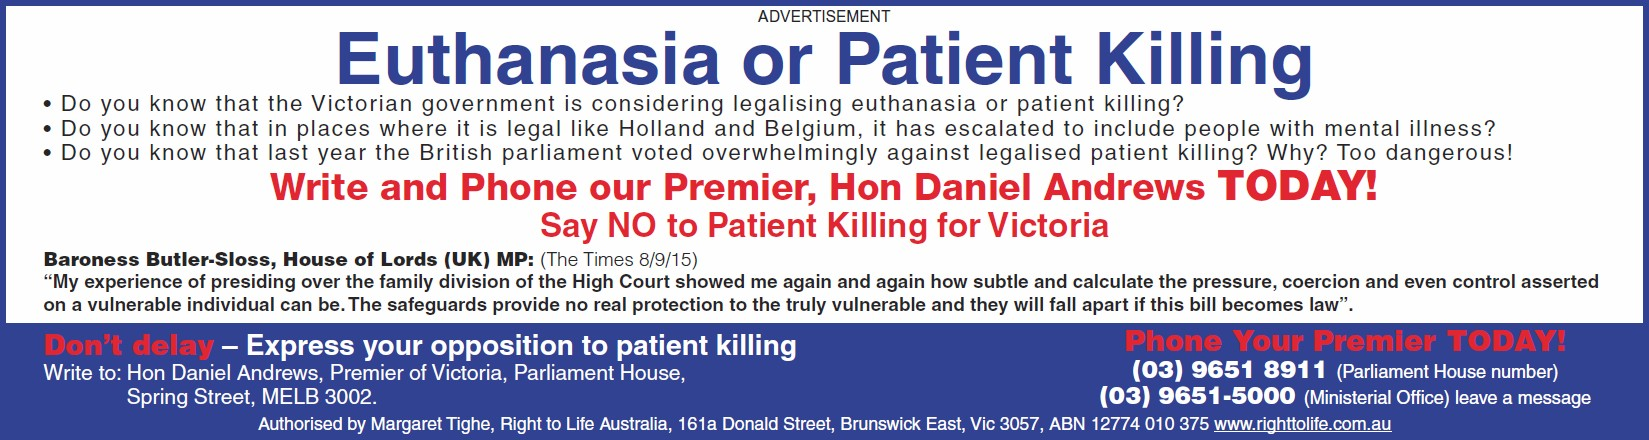 Euthanasia banner - contact Premier Daniel Andrews